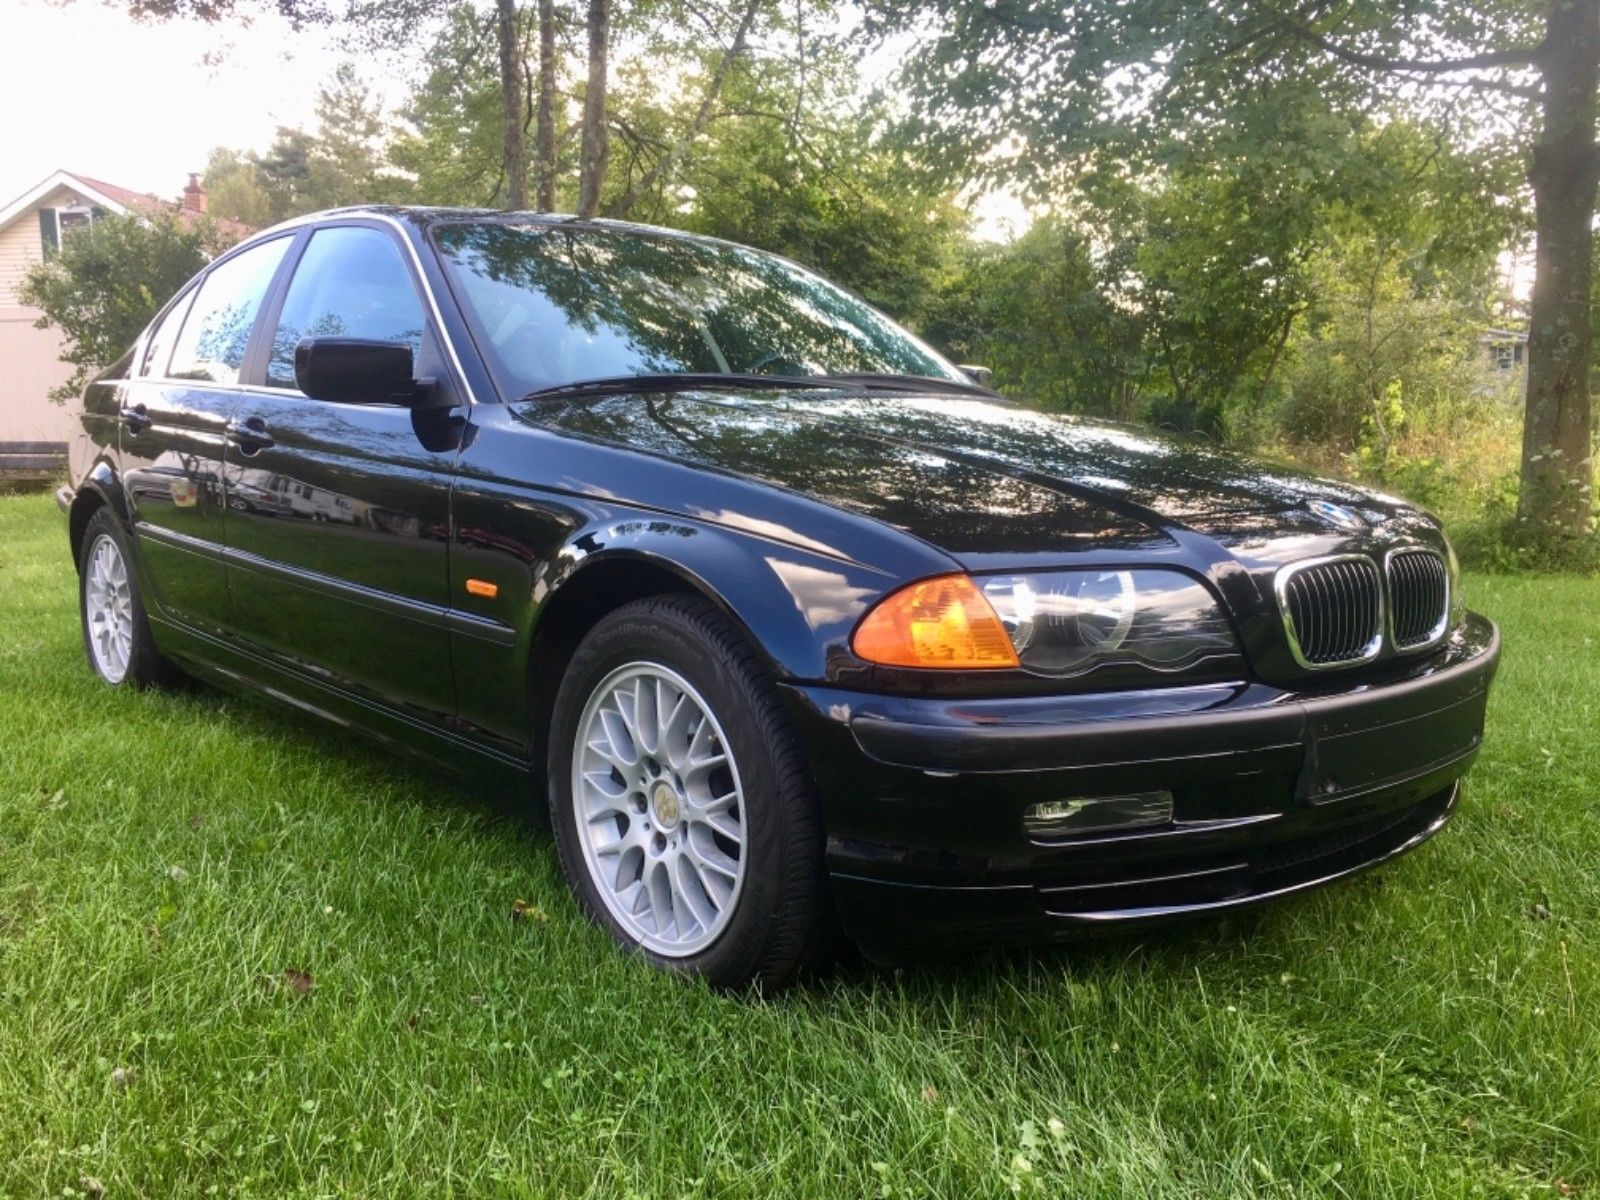 1999 Bmw 3 Series Premium 1999 Bmw 328i E46 43k Low Miles 2 Owners Dealer Serviced Clean 30 Mpg 2018 Is In Stock And For Sale Mycarboard Com